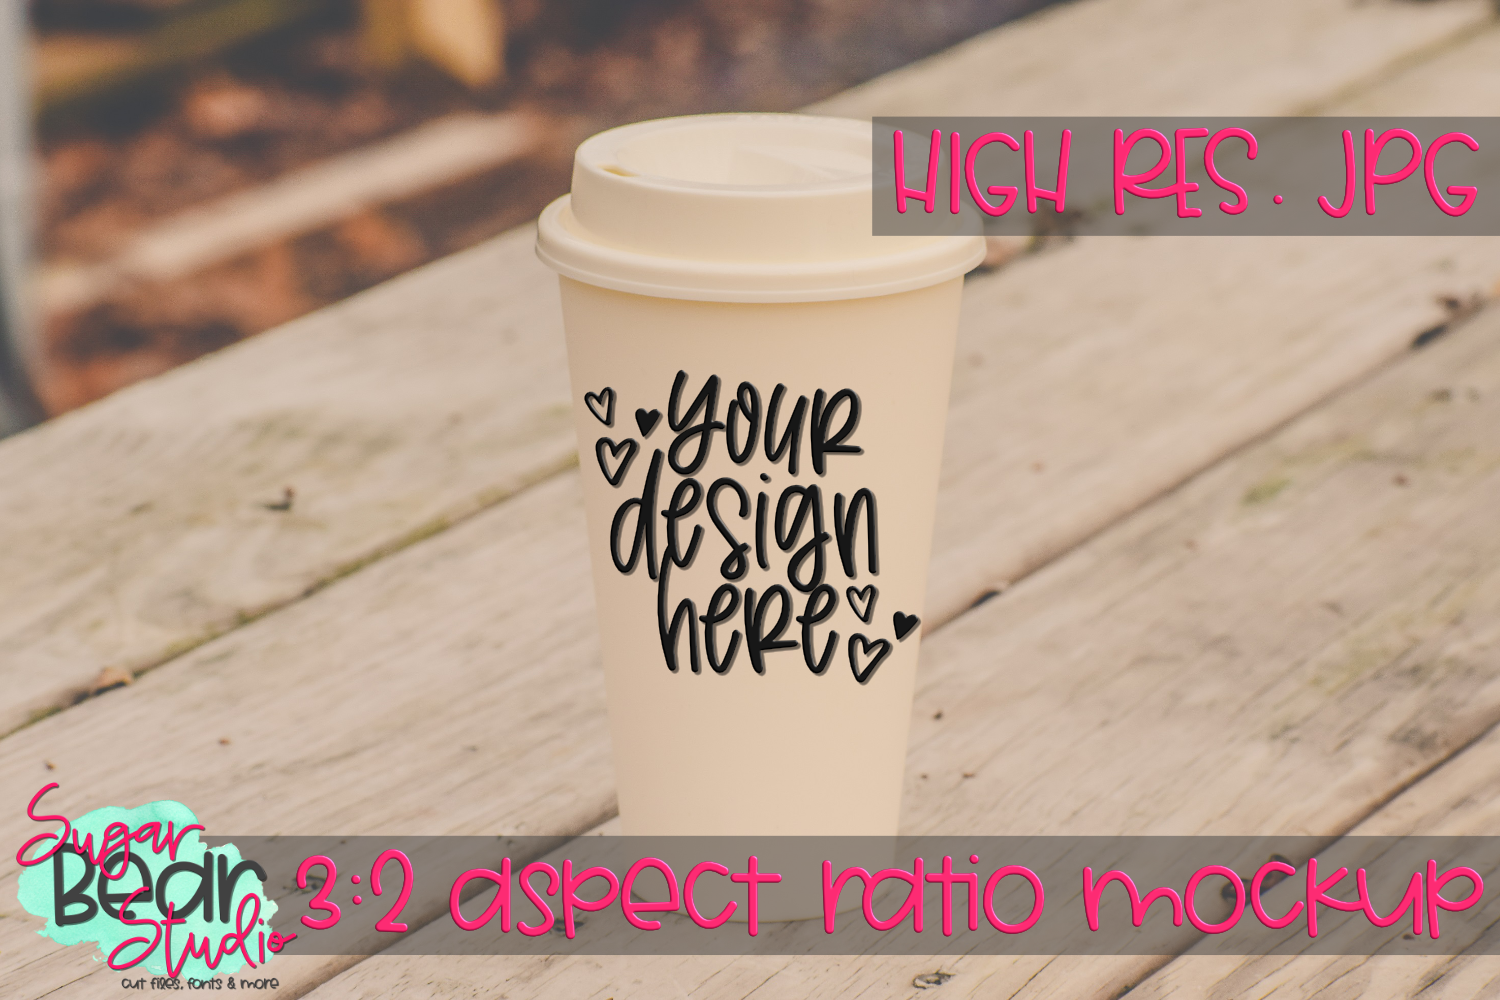 Travel Cup on a Picnic Table Mockup example image 1